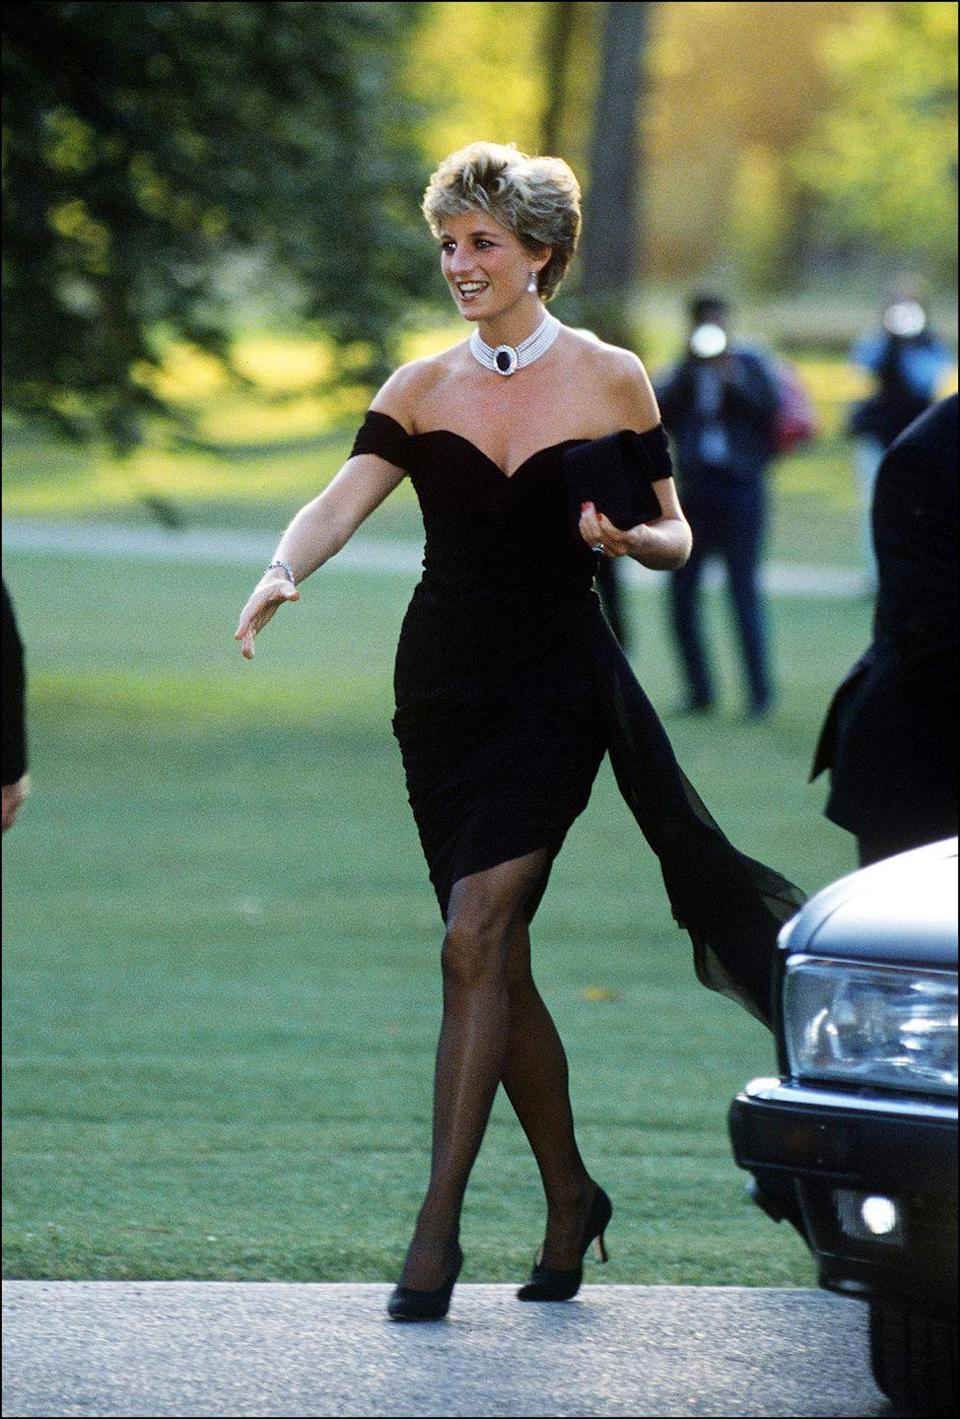 "<p>No longer ""Shy Di""! In 1994, while a documentary about Prince Charles' infidelity was airing, the leggy Princess Diana donned a clingy rushed minidress for a Serpentine Gallery benefit. The next day, she stole the newspaper headlines with her confident look (one which certainly <a href=""http://www.goodhousekeeping.com/life/entertainment/news/a38928/kate-middleton-queens-birthday/"" rel=""nofollow noopener"" target=""_blank"" data-ylk=""slk:broke the queen's dress code"" class=""link rapid-noclick-resp"">broke the queen's dress code</a>).<br></p>"